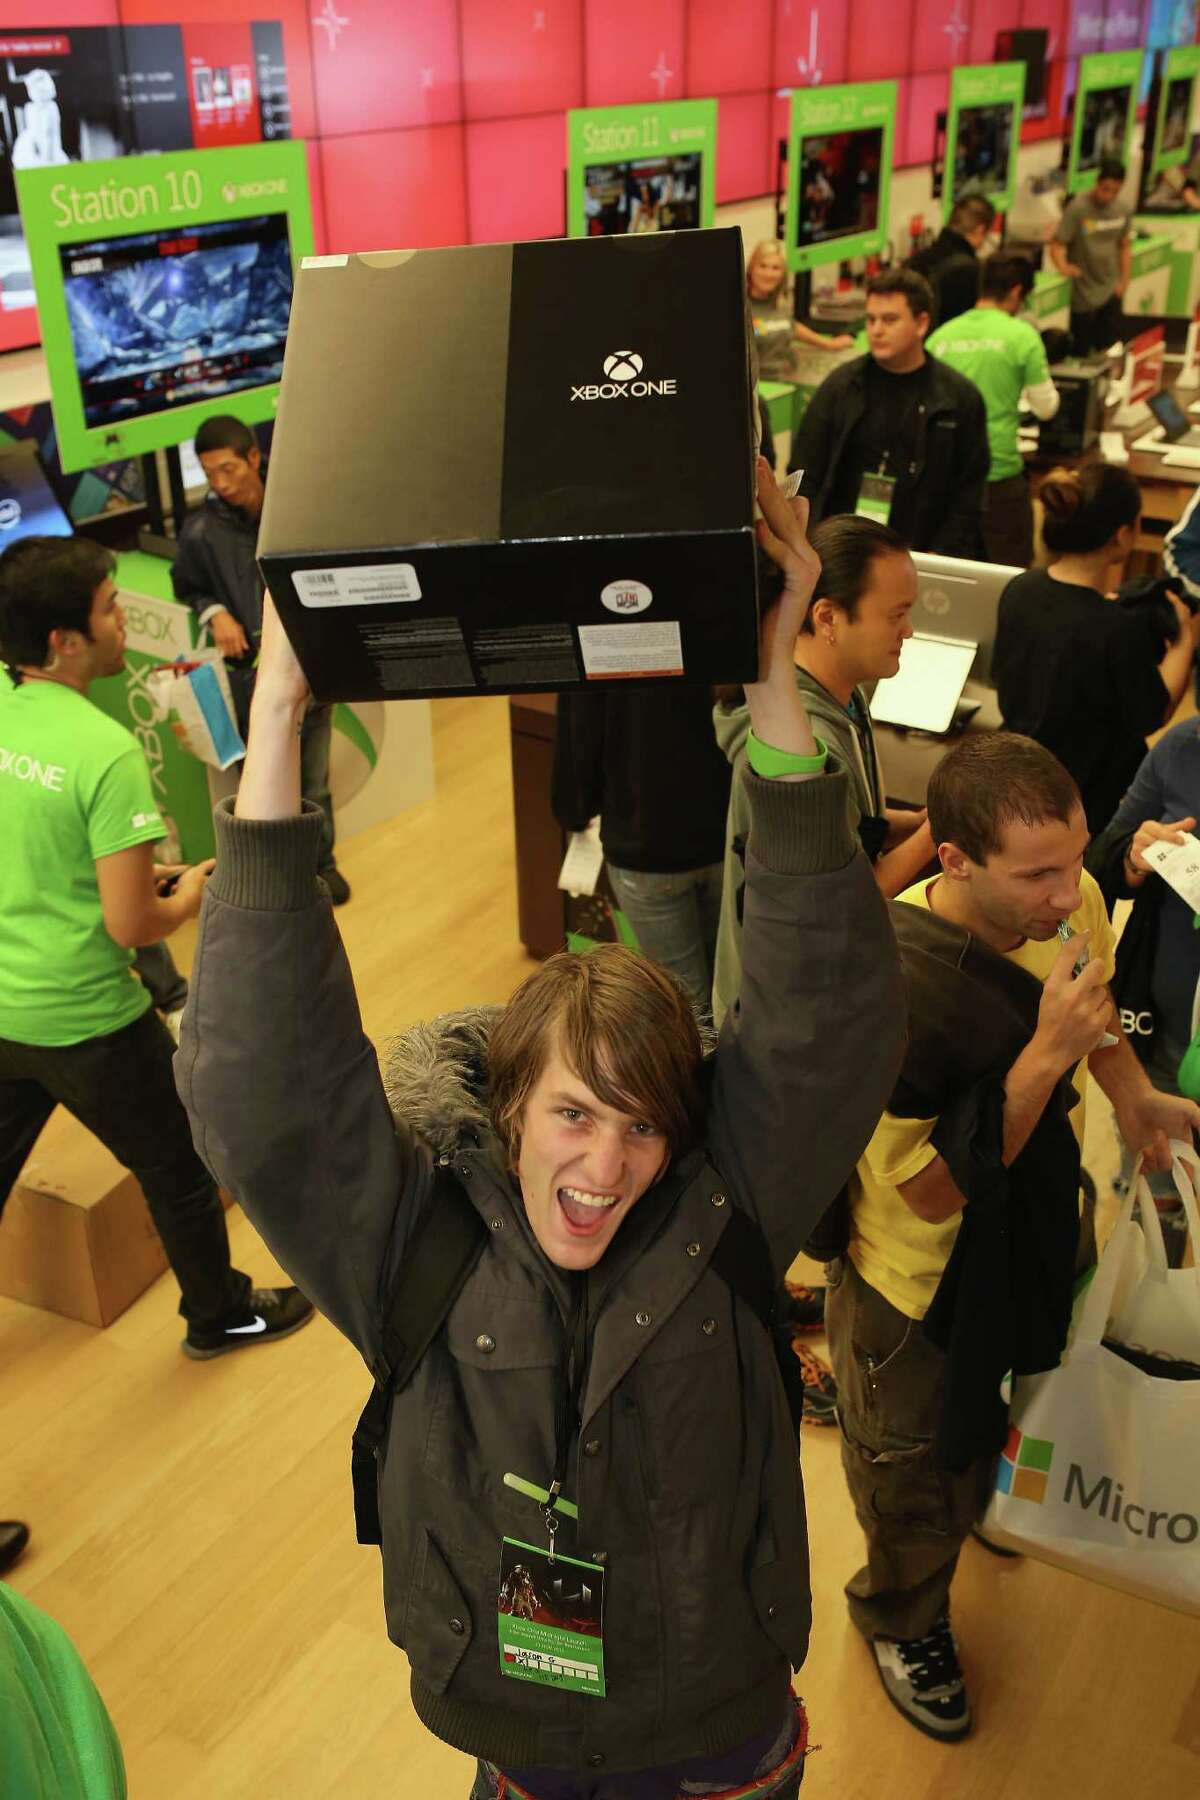 An excited fan shows off his new Xbox One after purchasing it at midnight from the Microsoft retail store in Fashion Valley Mall in San Diego on Friday.